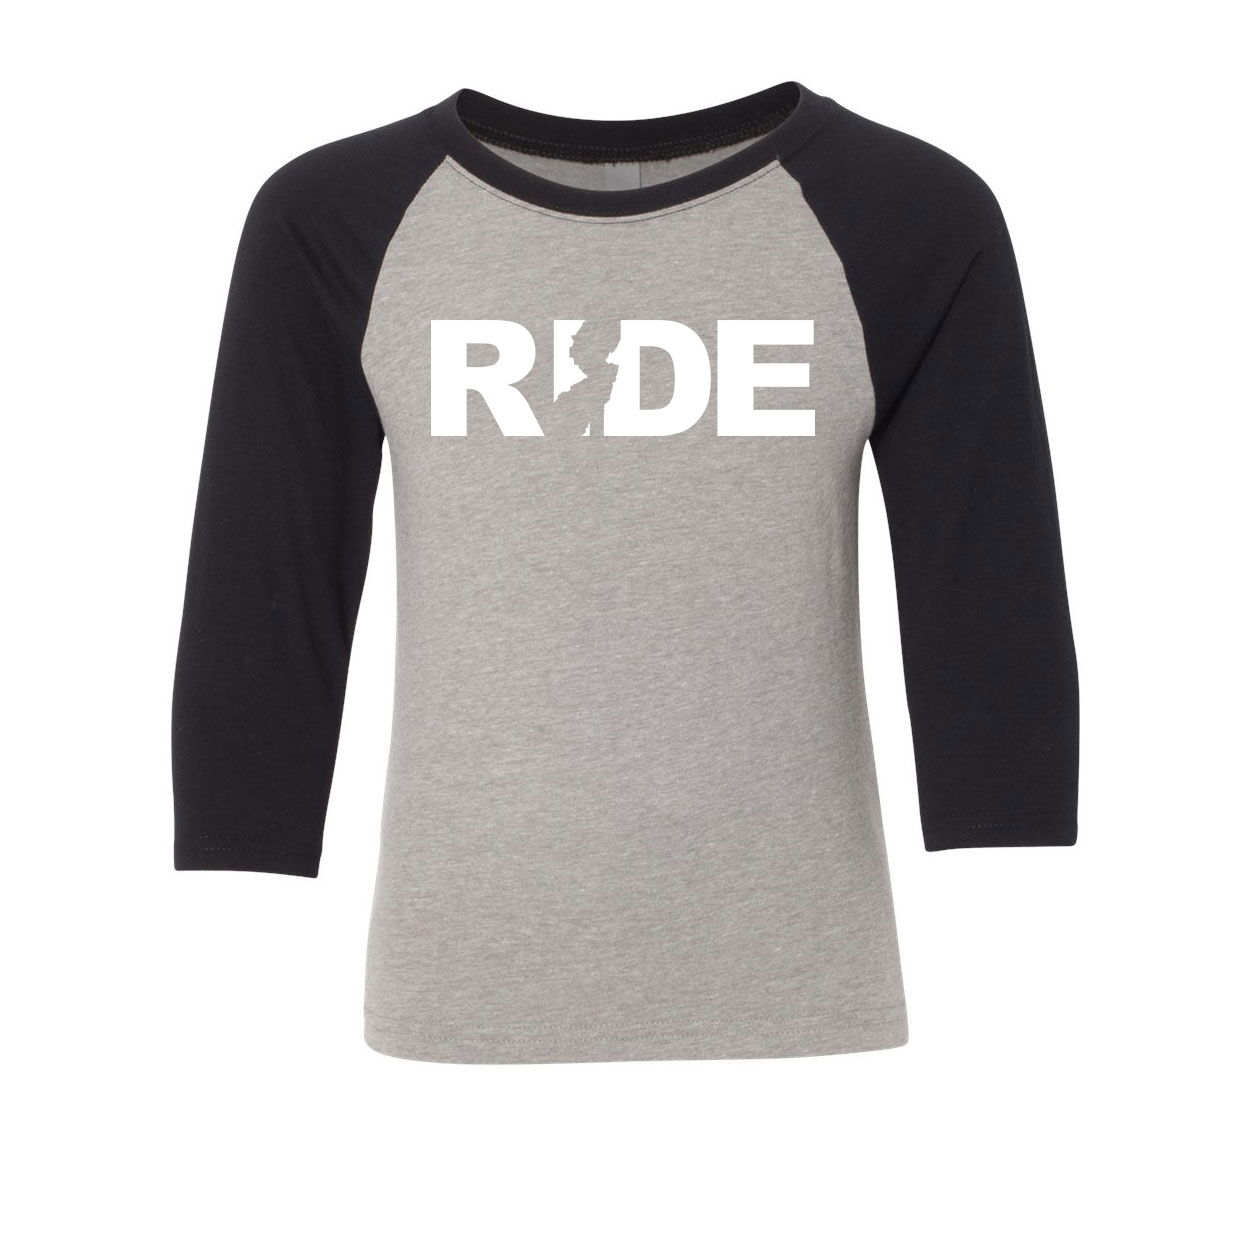 Ride New Jersey Classic Youth Premium Raglan Shirt Gray/Black (White Logo)